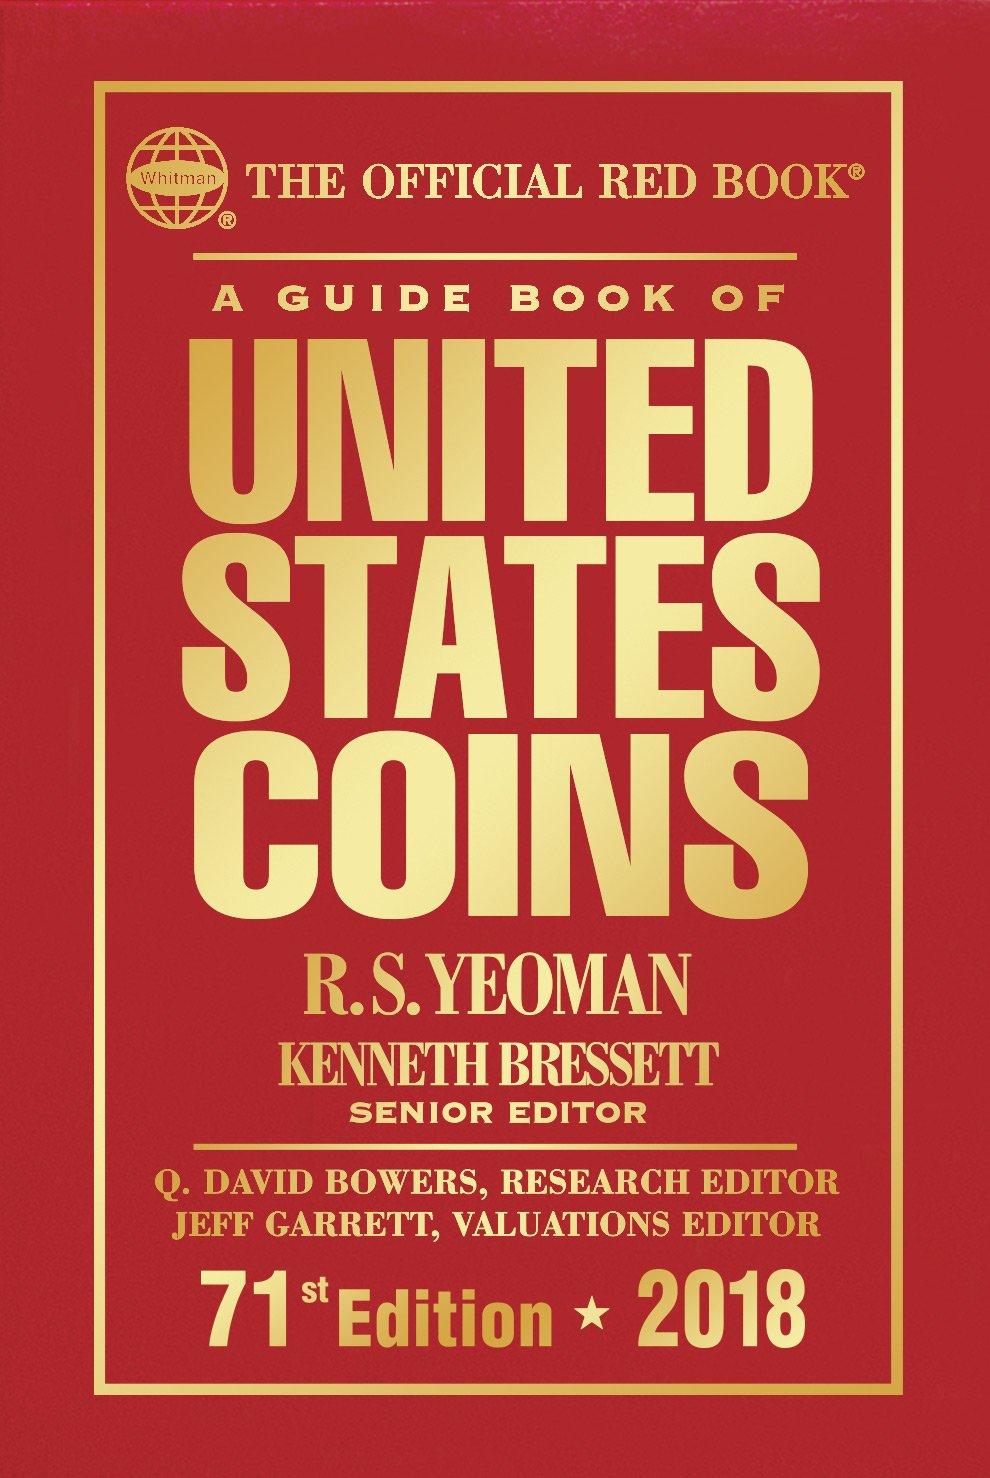 A Guide Book of United States Coins 2018: The Official Red Book, Hardcover Hardcover – Illustrated, April 4, 2017 R.S. Yeoman Kenneth Bressett Q. David Bowers Jeff Garrett